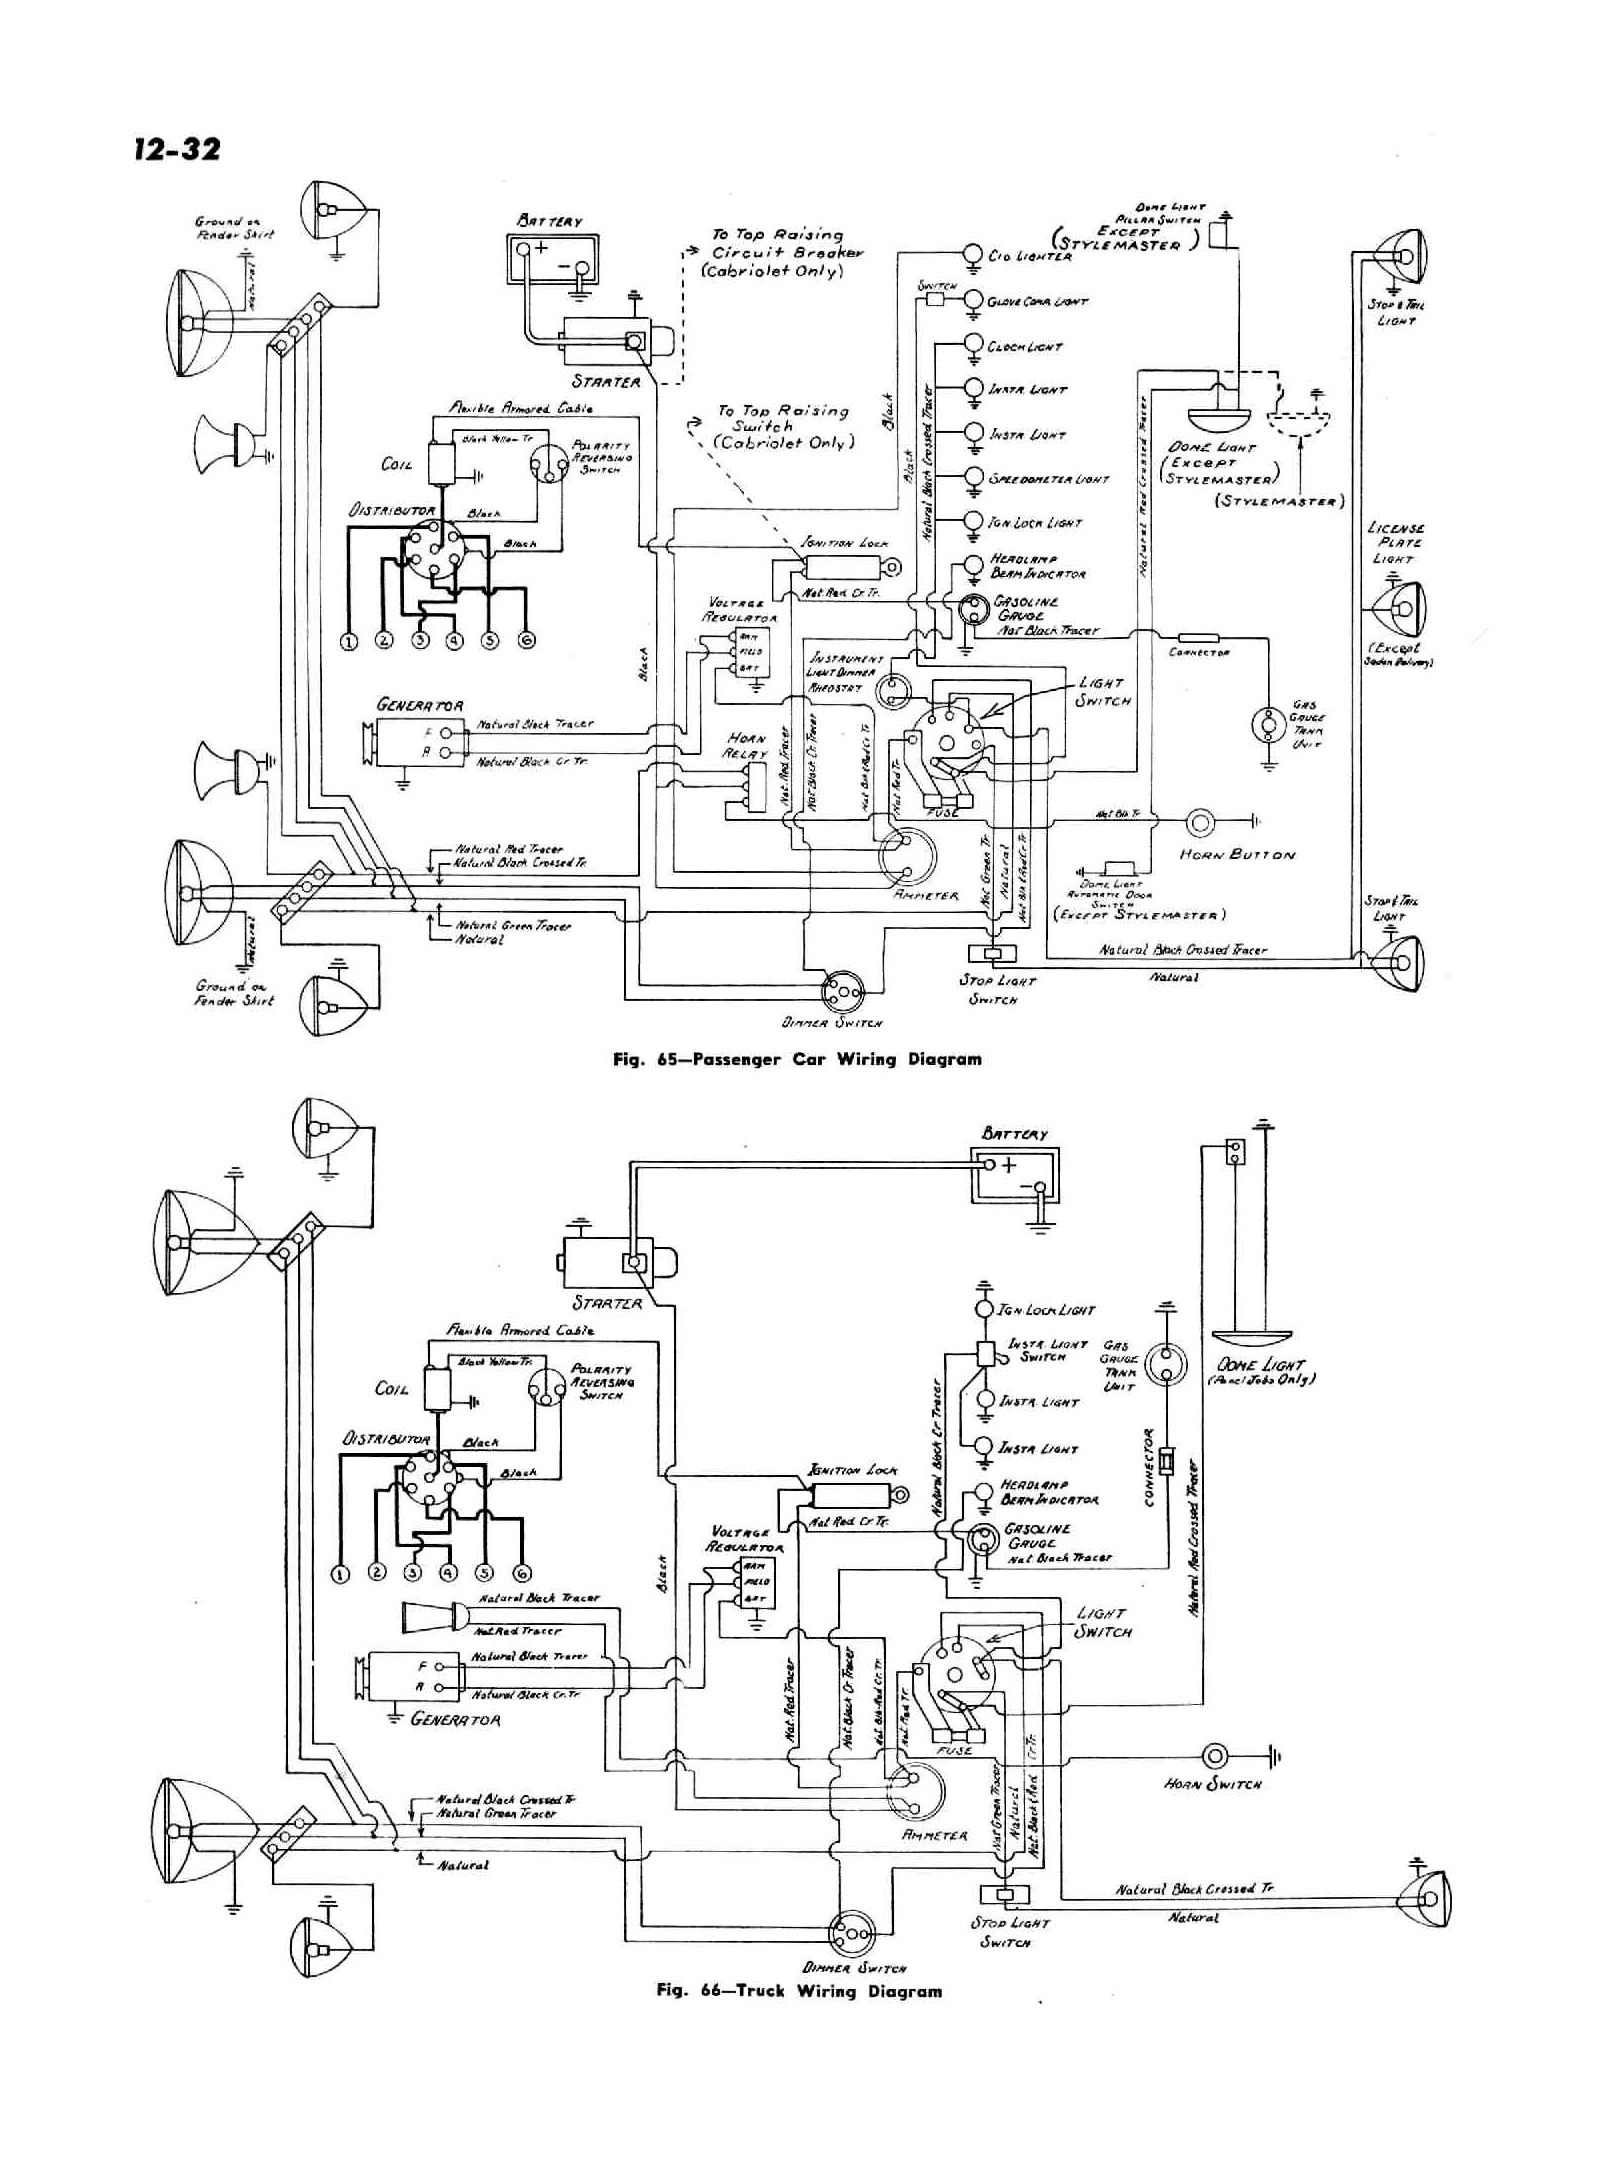 1066 international tractor wiring diagram 1486